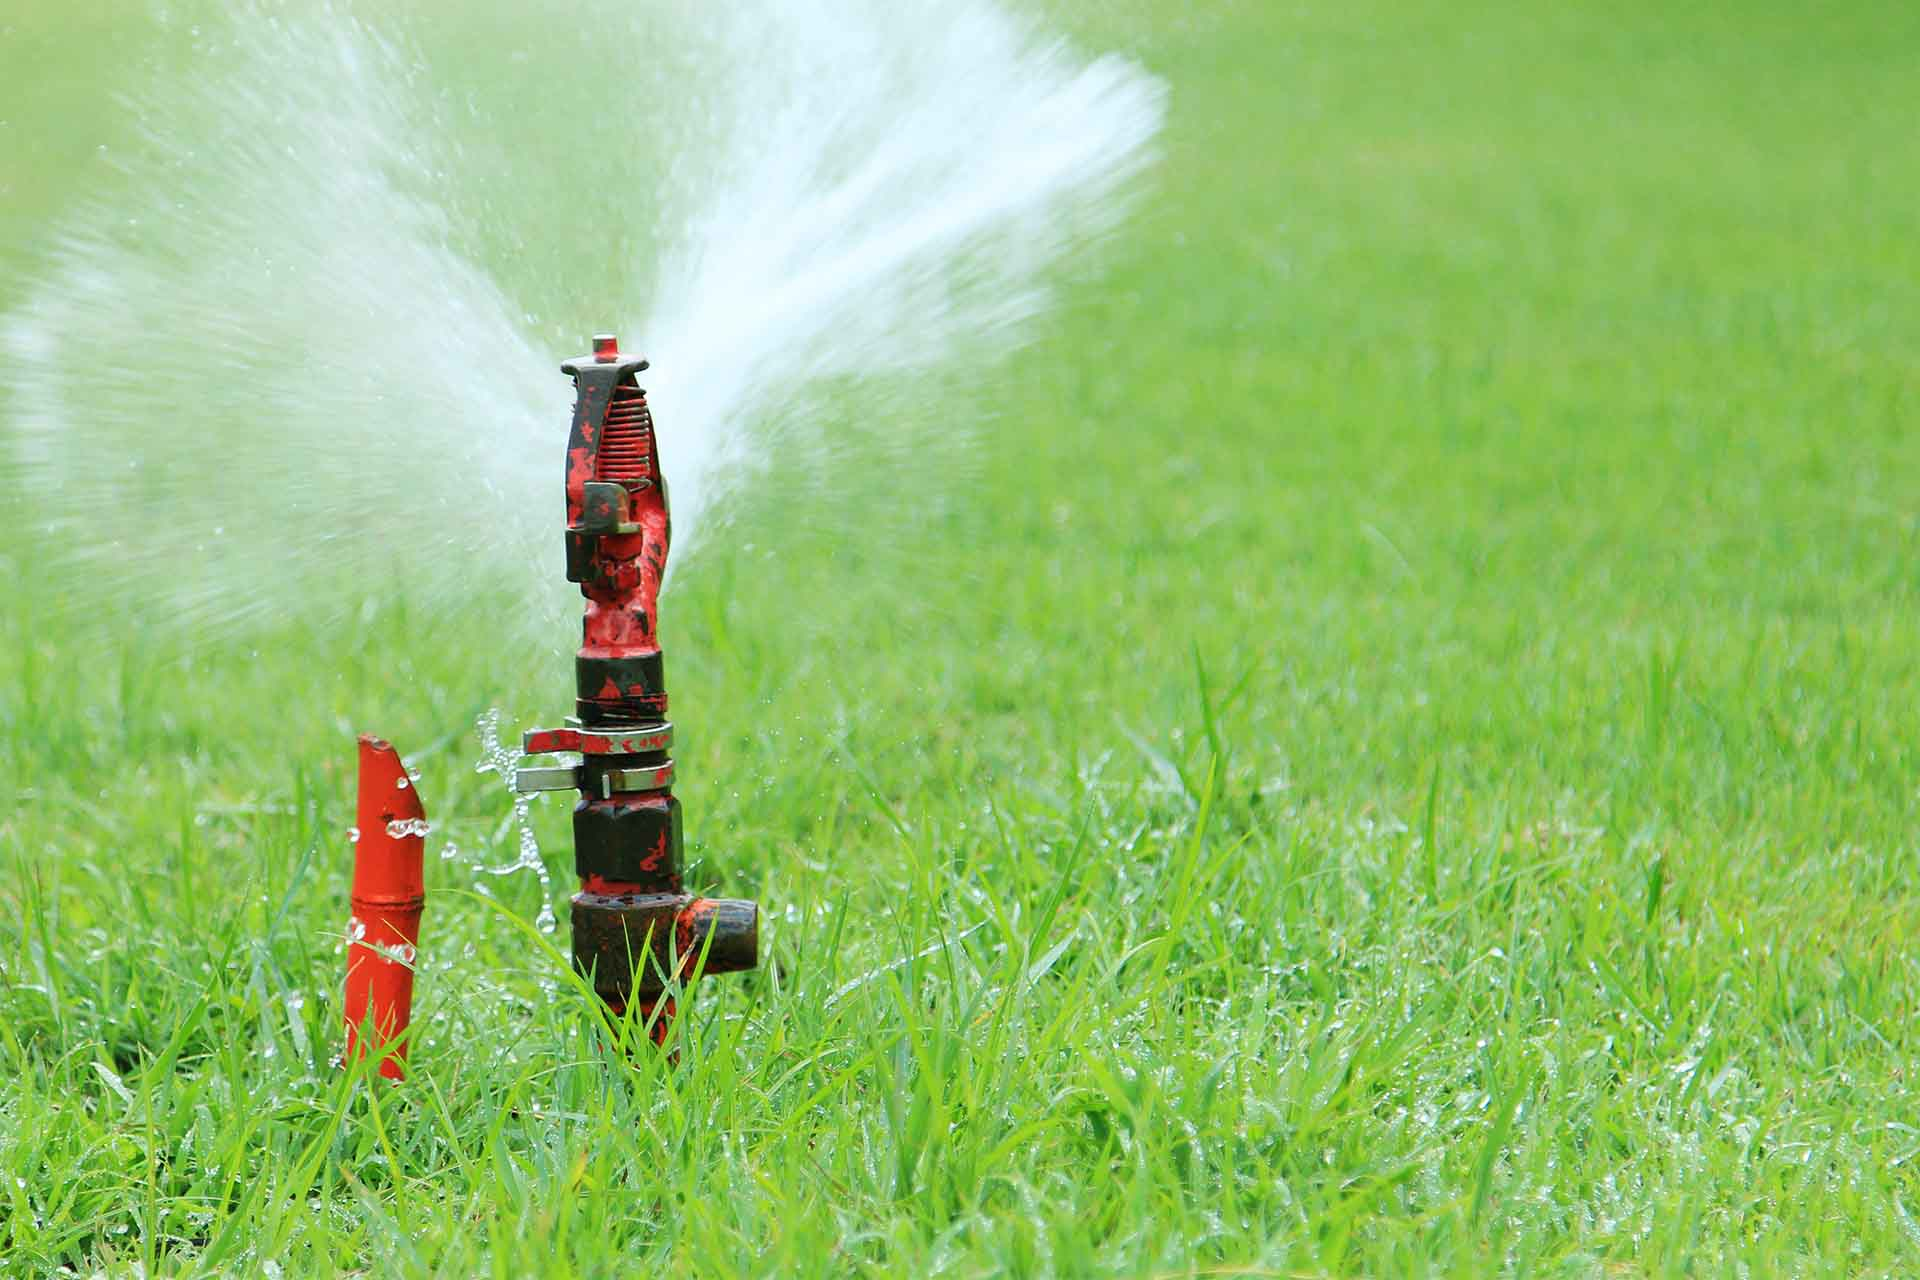 How Do I Take Care Of My Irrigation System For The Winter?